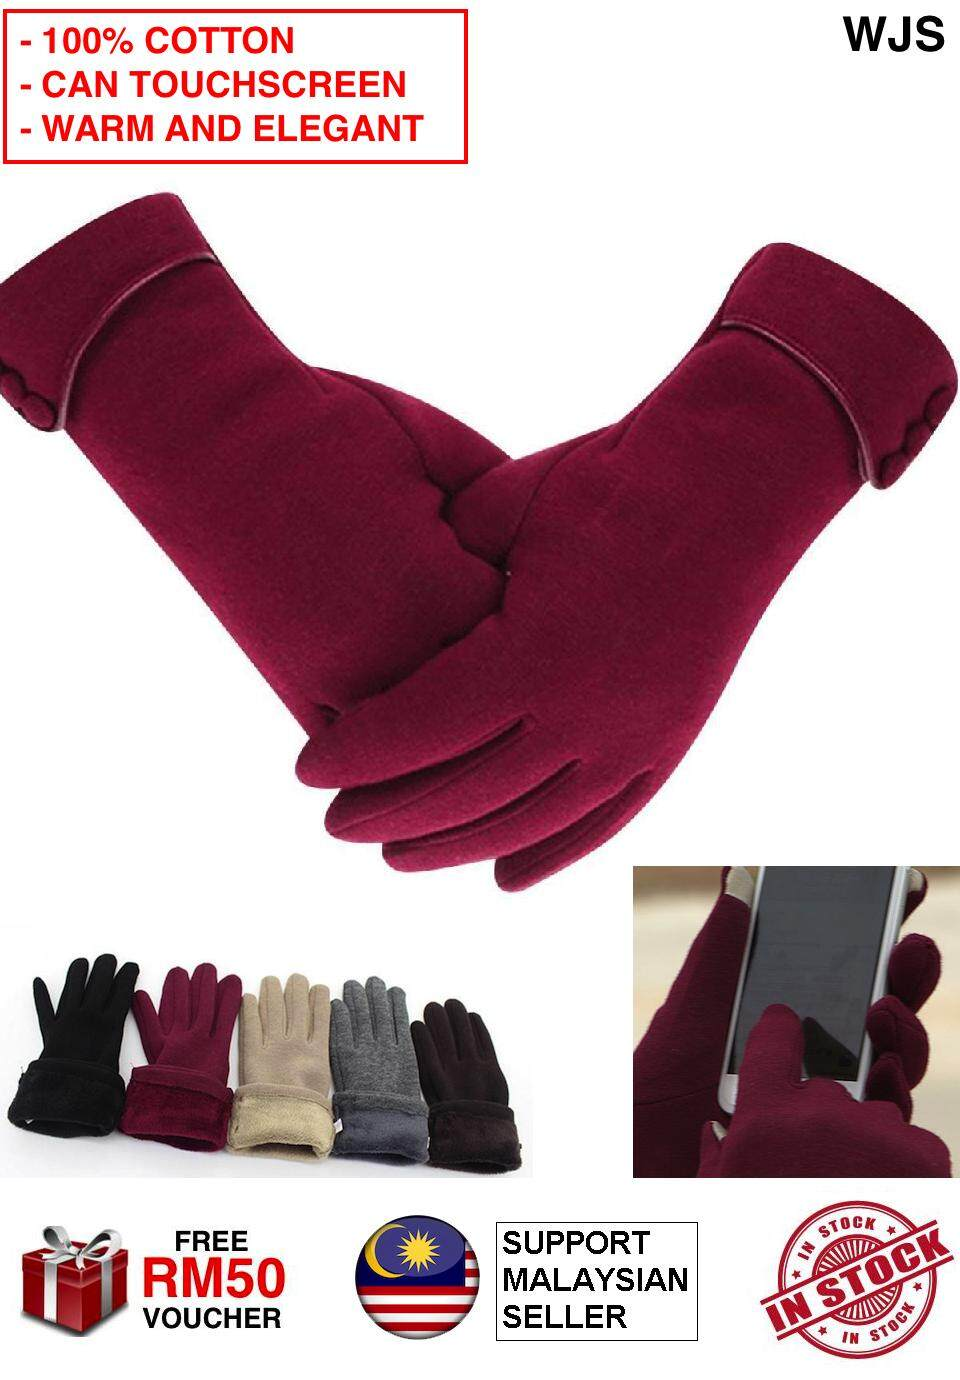 (TOUCHSCREEN SUPPORT) WJS 100% Cotton Elegant Women Winter Glove Lady Winter Warm Gloves Touch Screen Phone Windproof Lined Thick Gloves MULTIPLE COLORS [FREE RM 50 VOUCHER]